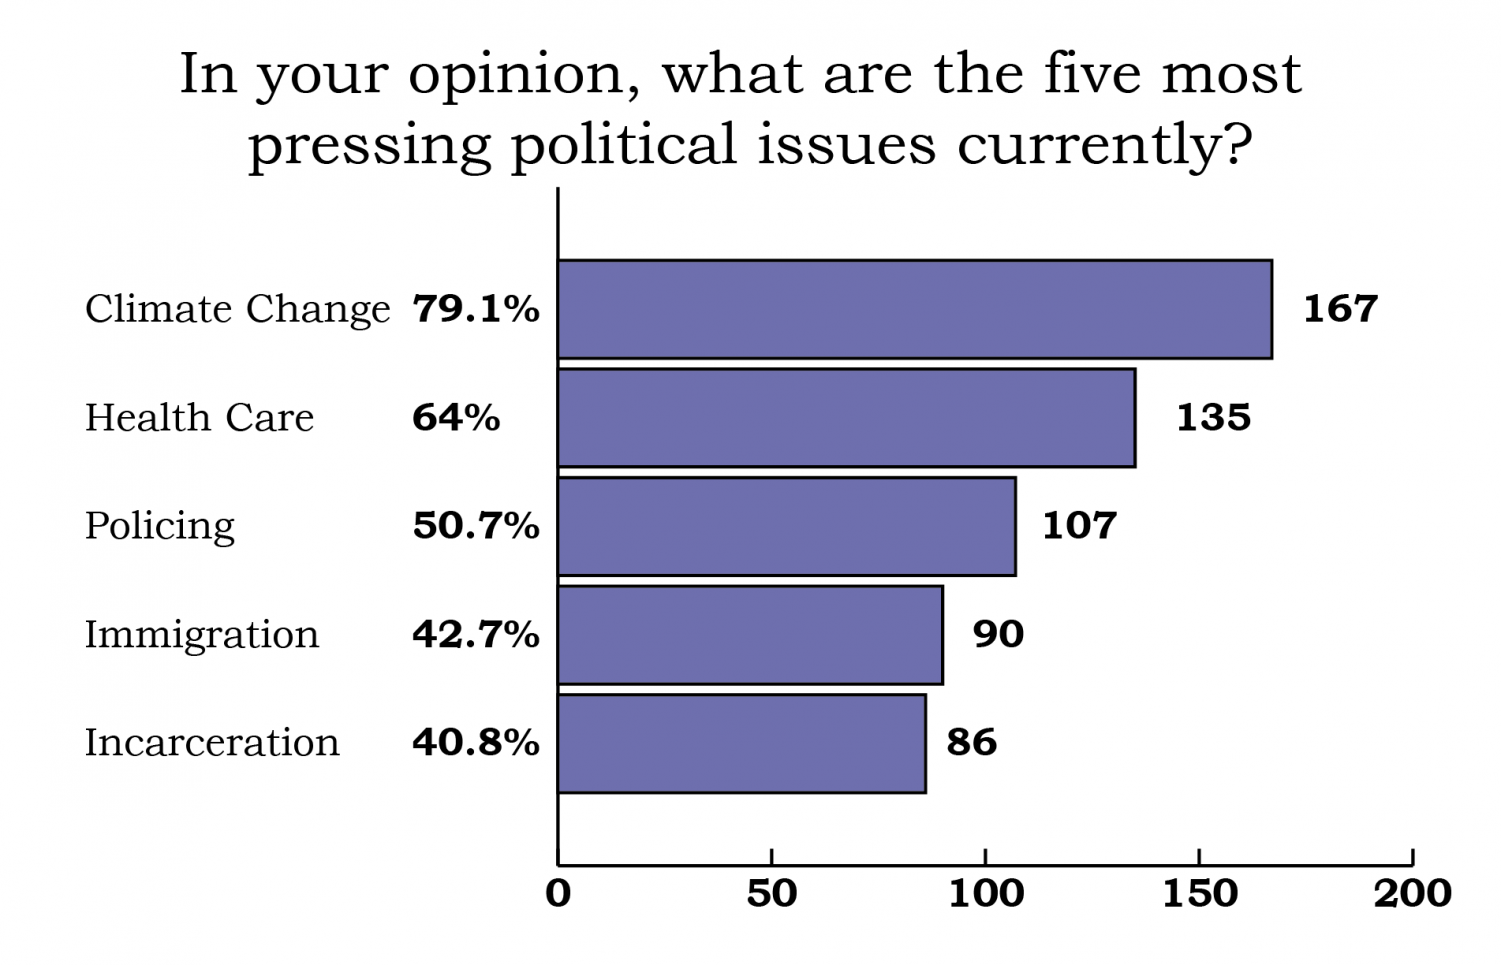 Survey results in a bar chart showing the rankings as climate change, health care, policing, immigration, and incarceration